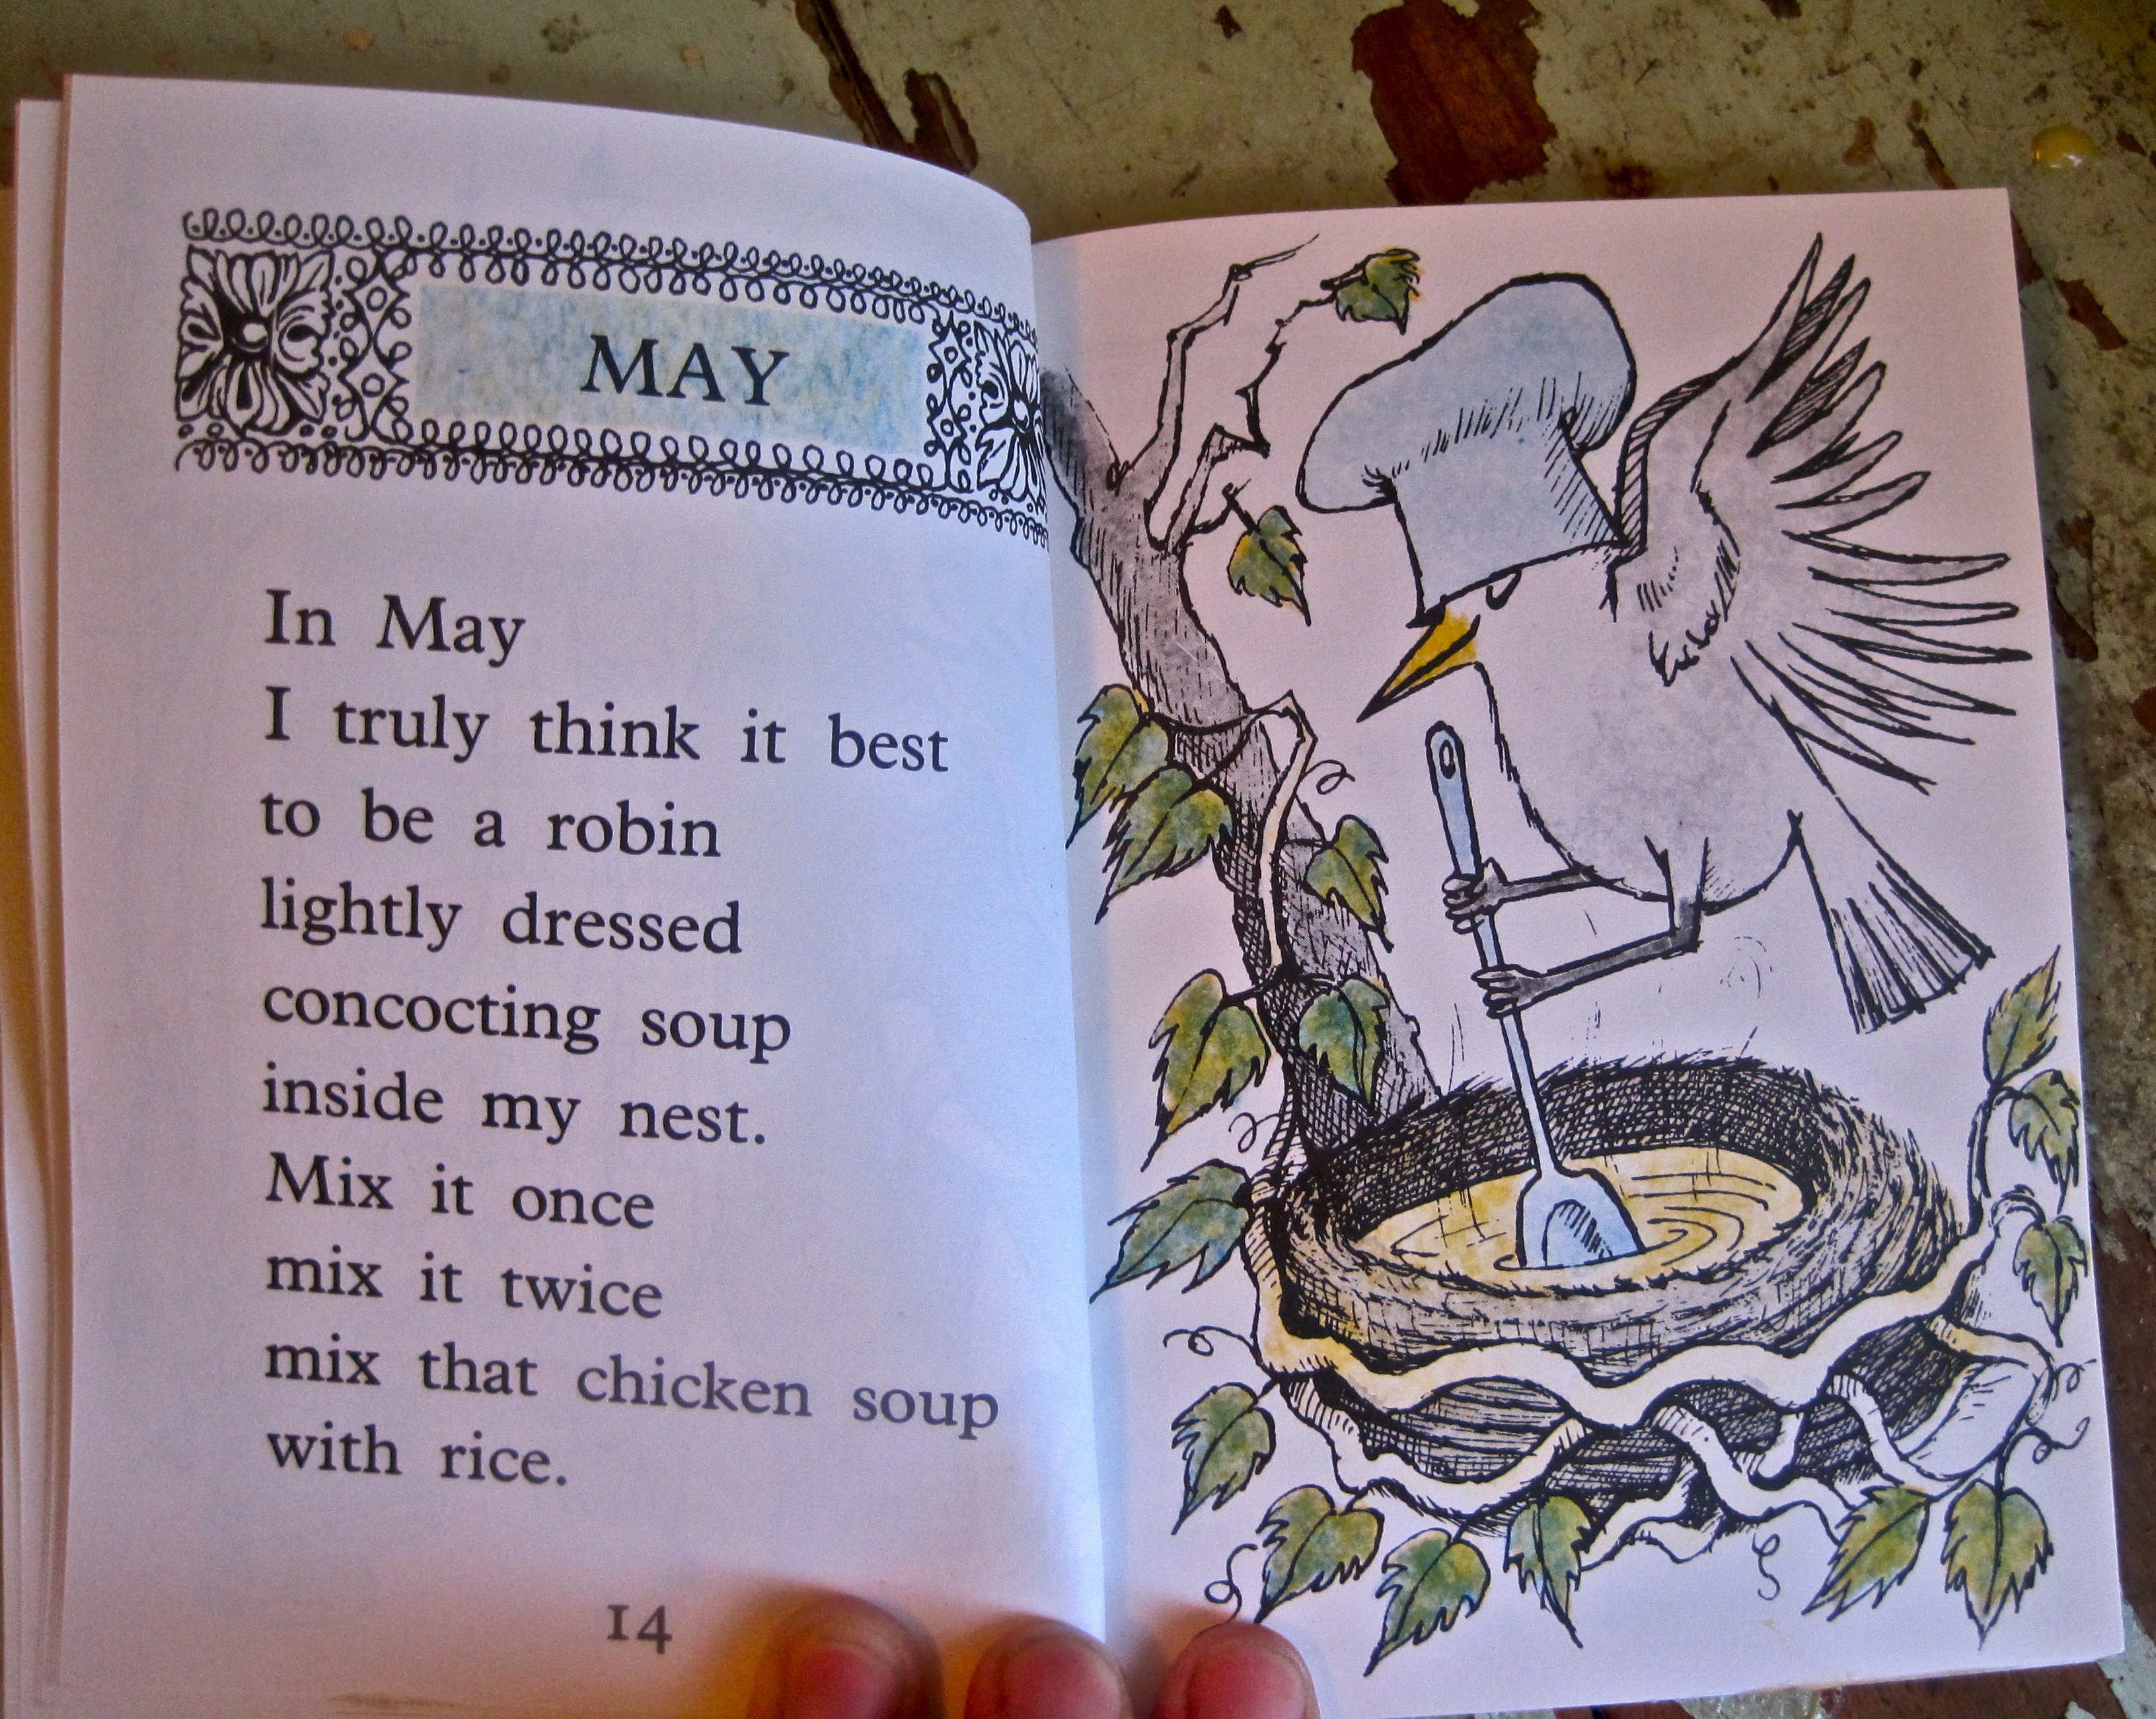 Chicken Soup Quotes: Chicken Soup With Rice ~ Maurice Sendak